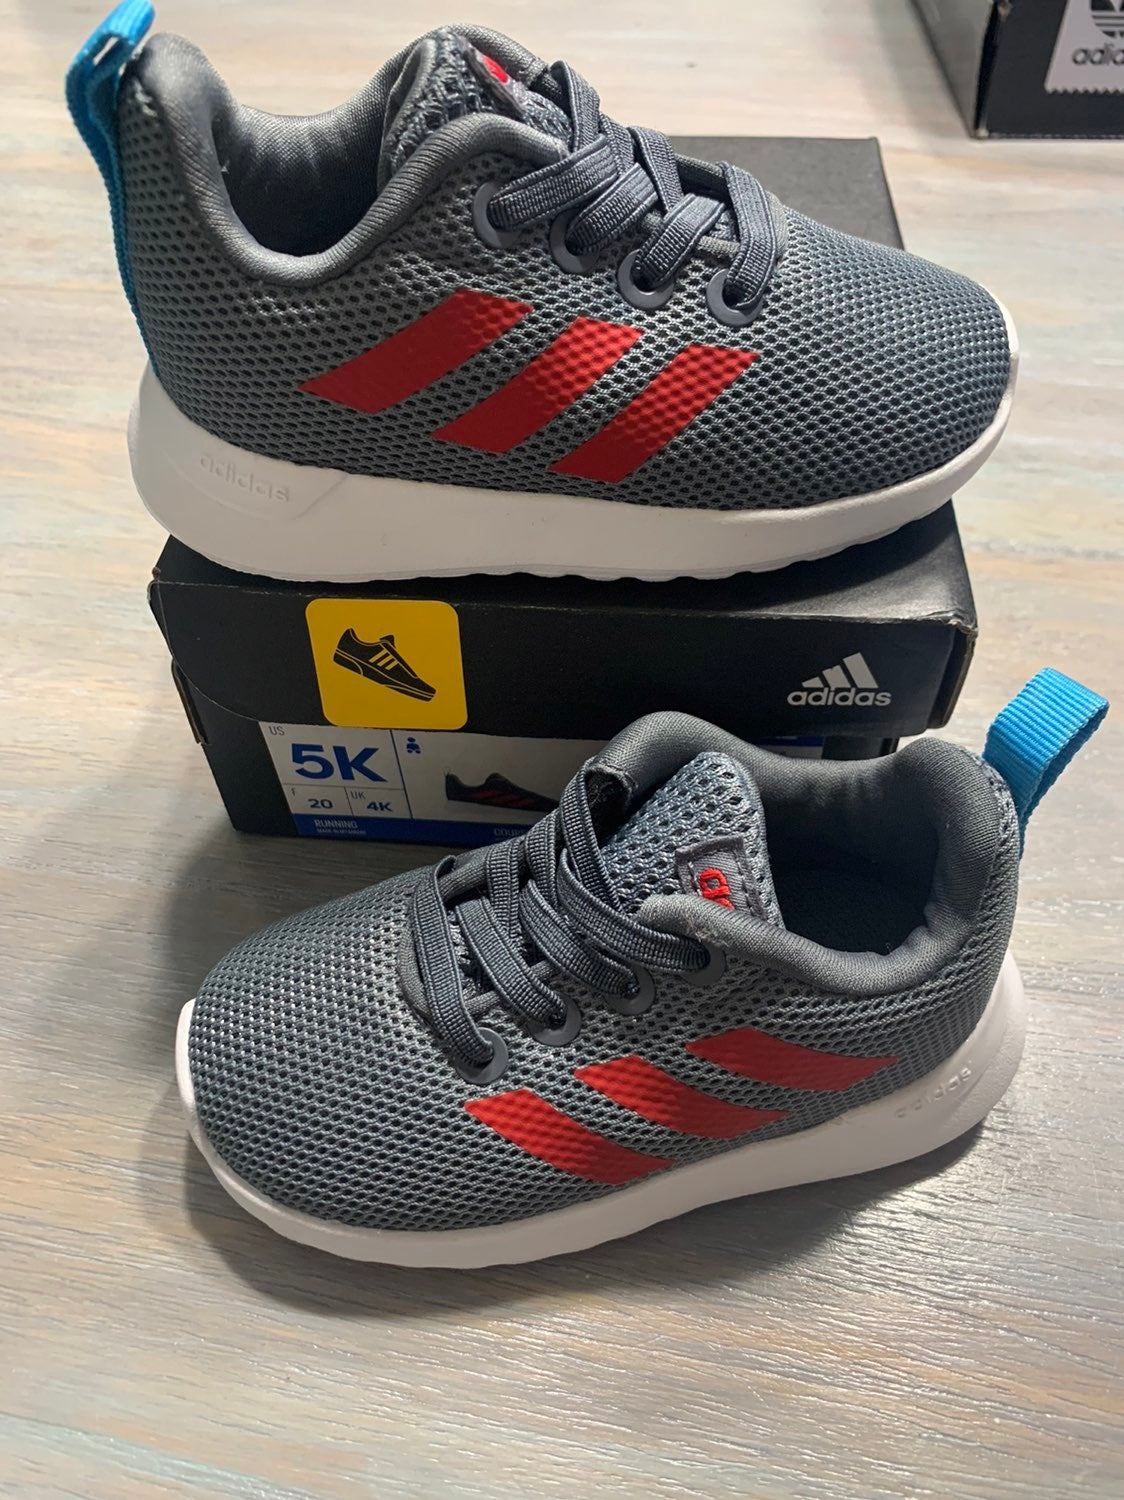 Adidas baby boy shoes size 5 new